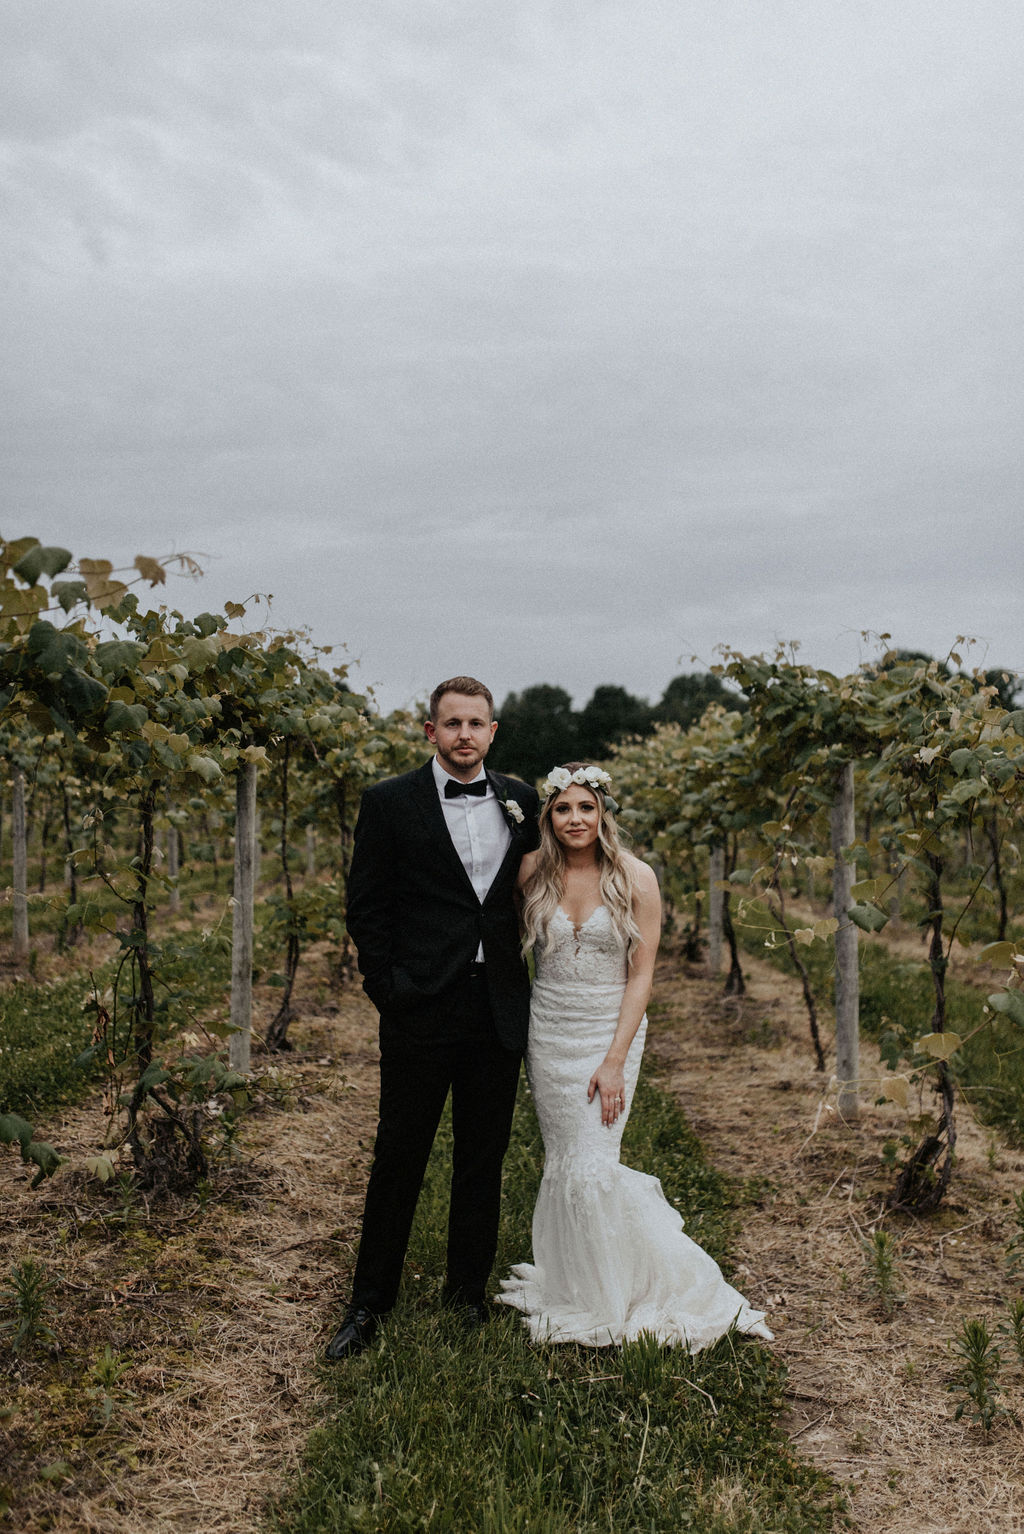 A couple smiling in the vineyards